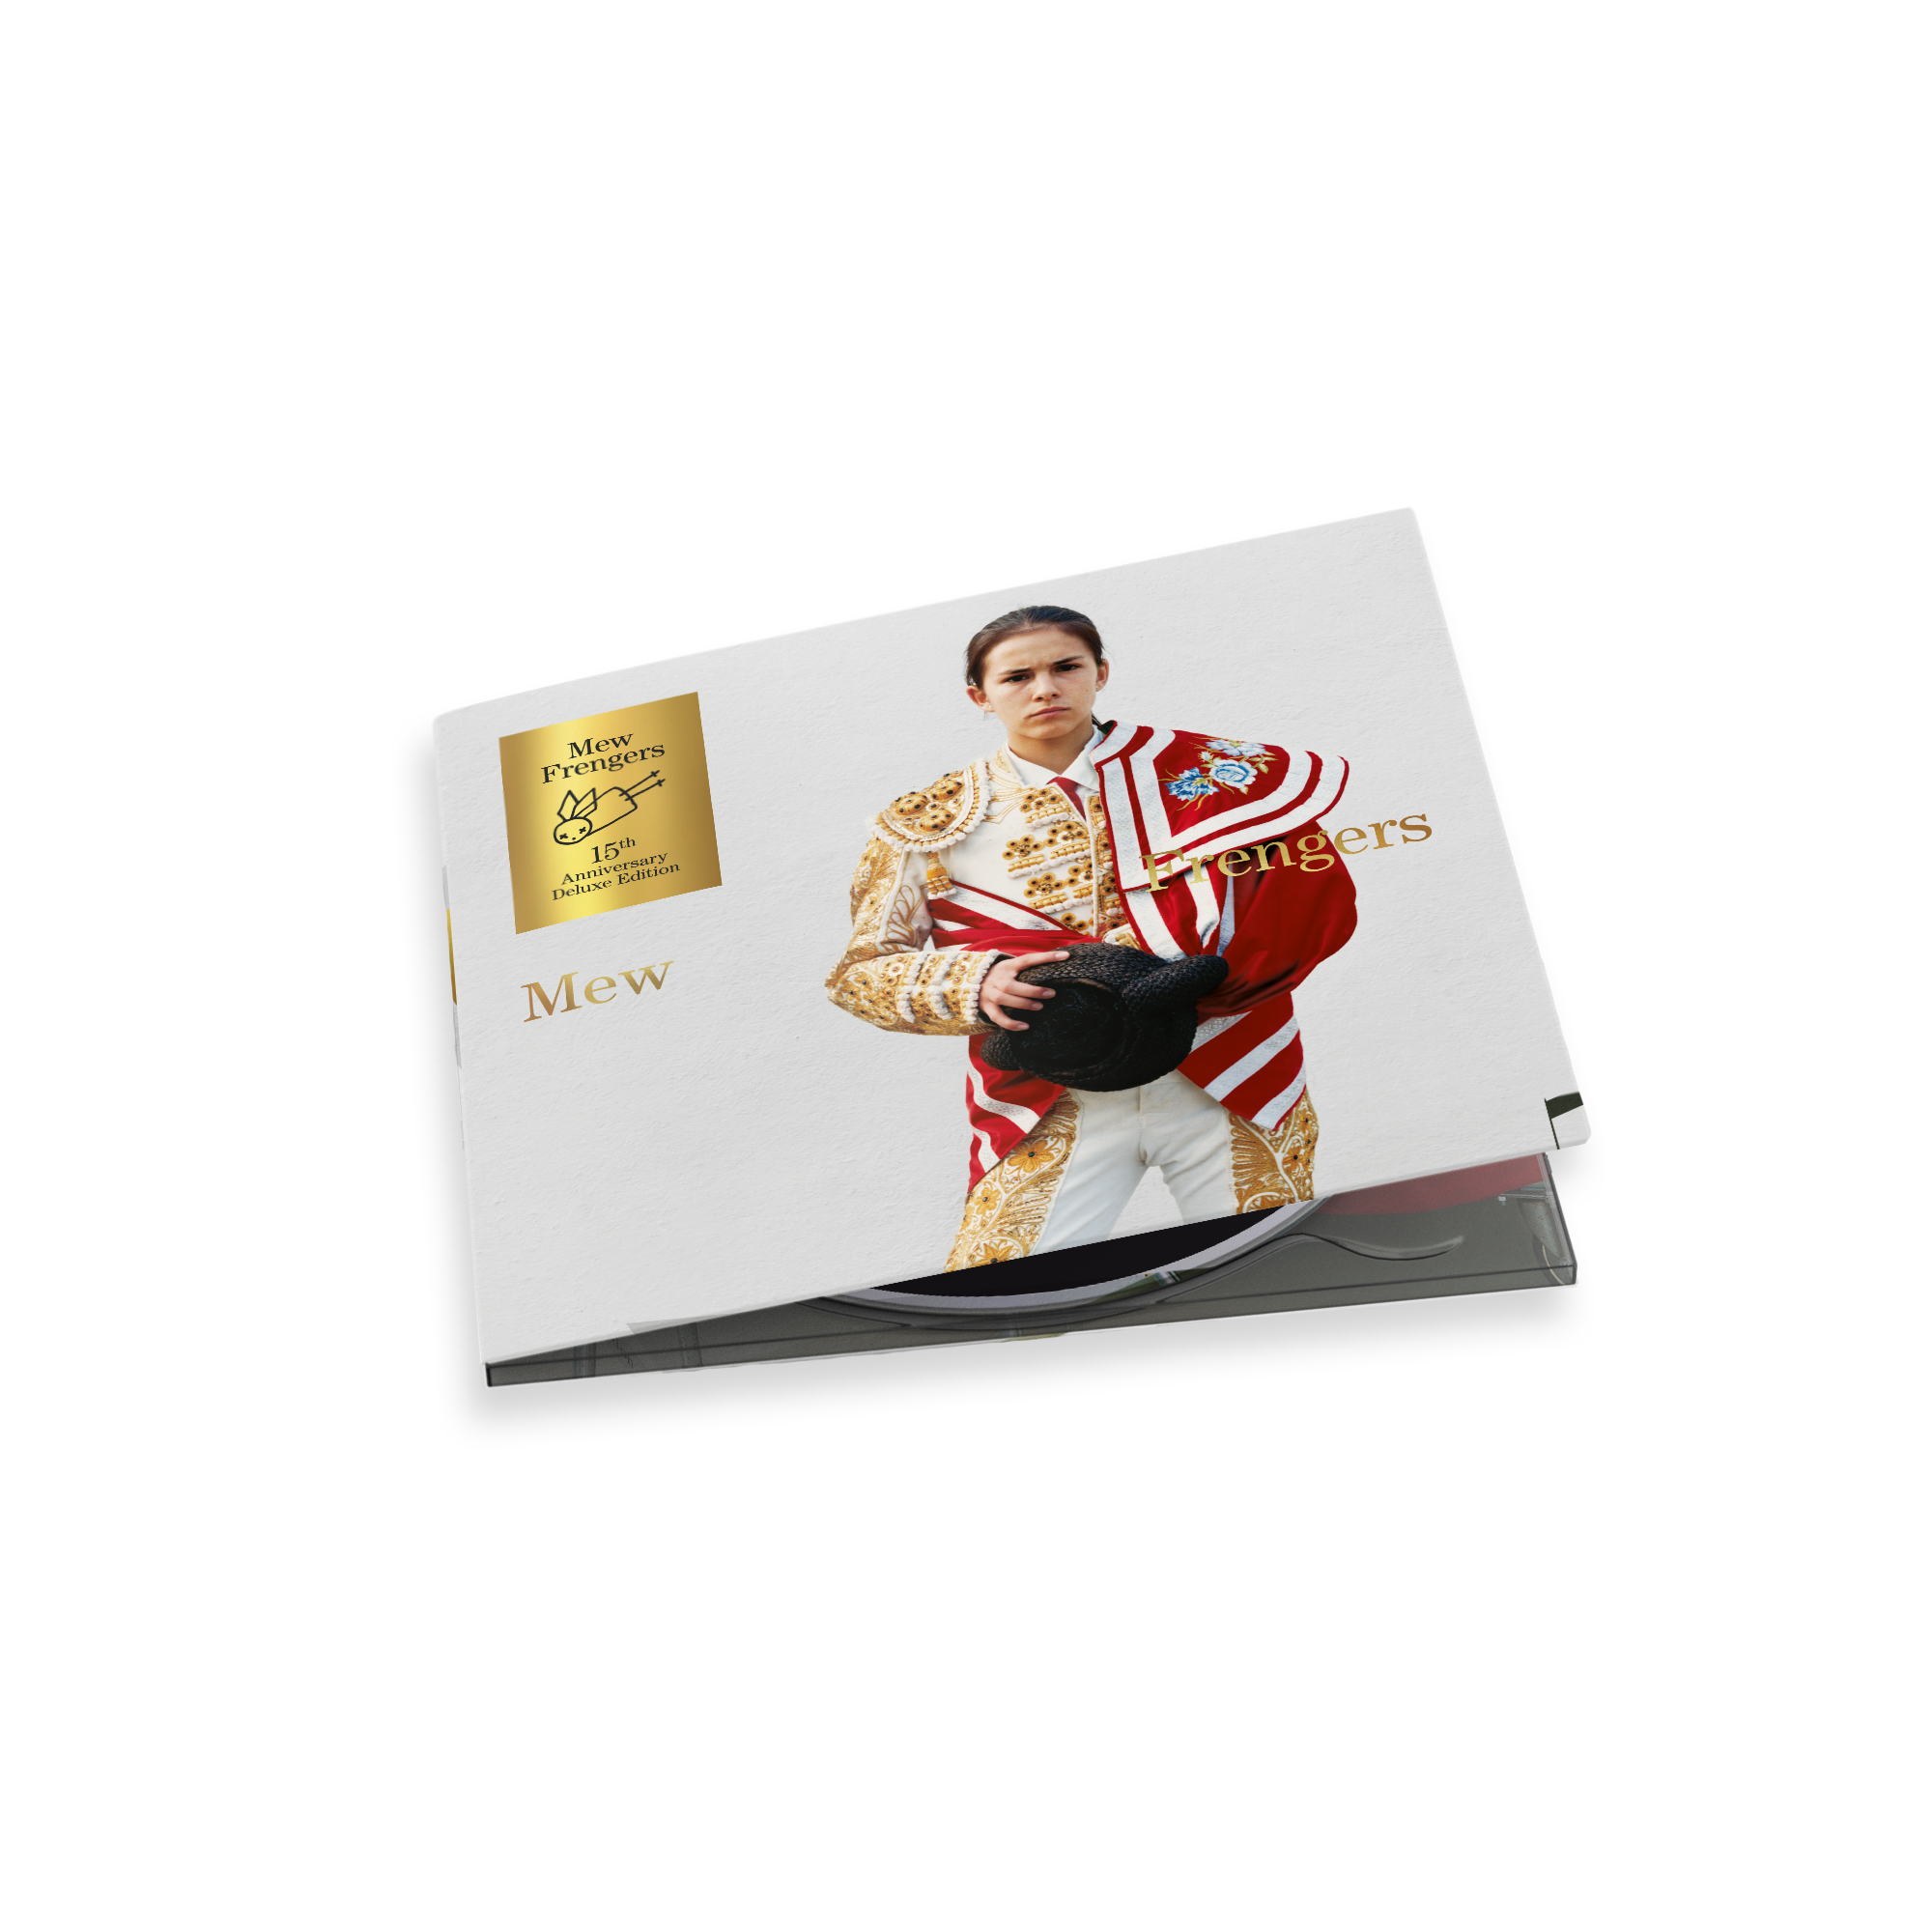 Frengers (15th Anniversary Deluxe Edt) - Mew - Musik -  - 0602567508519 - May 11, 2018